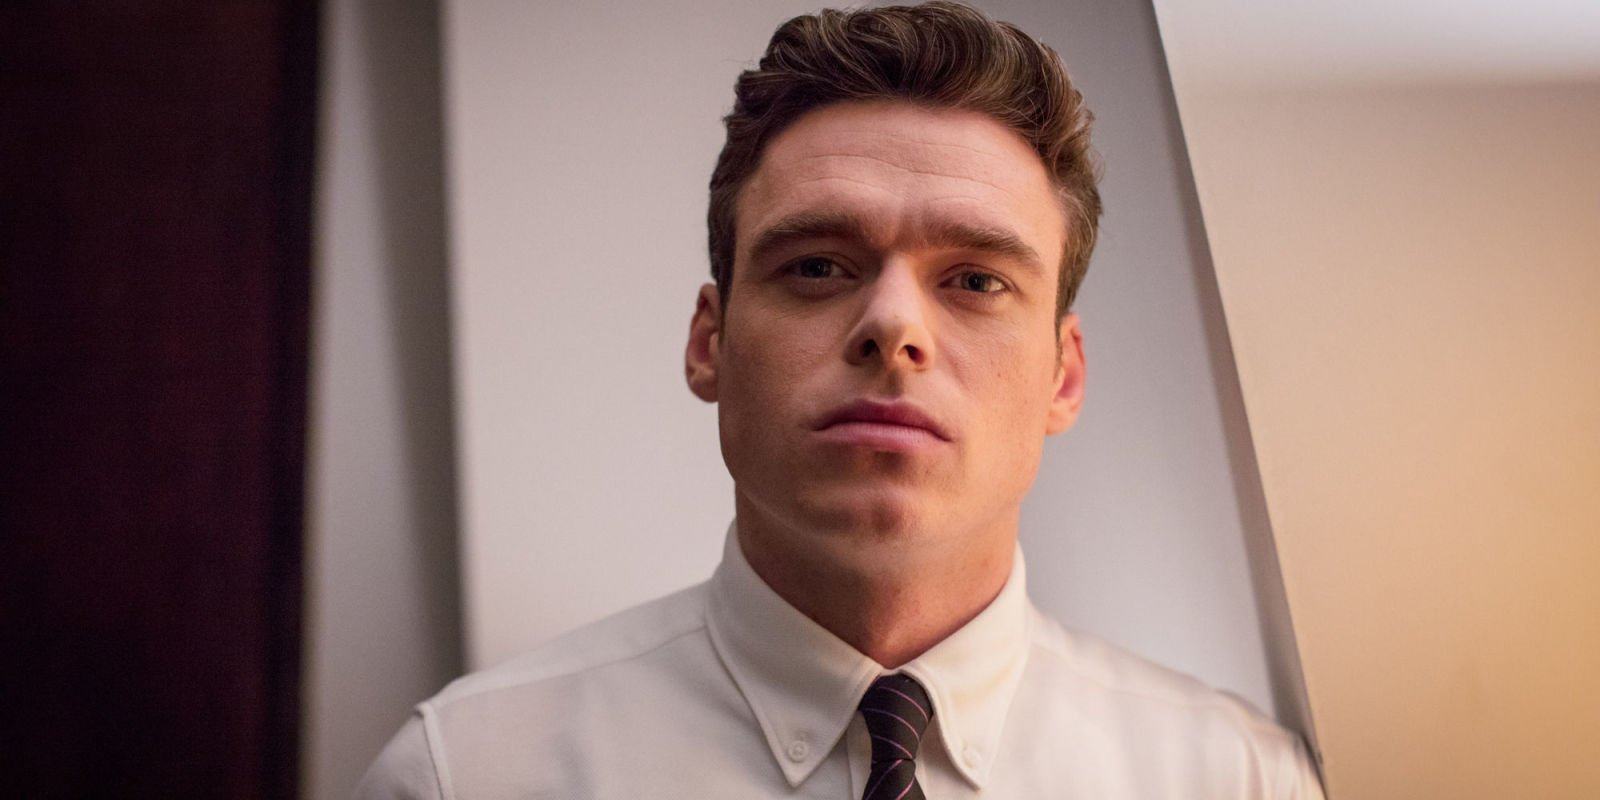 Bodyguard actor has odds of becoming new James Bond slashed